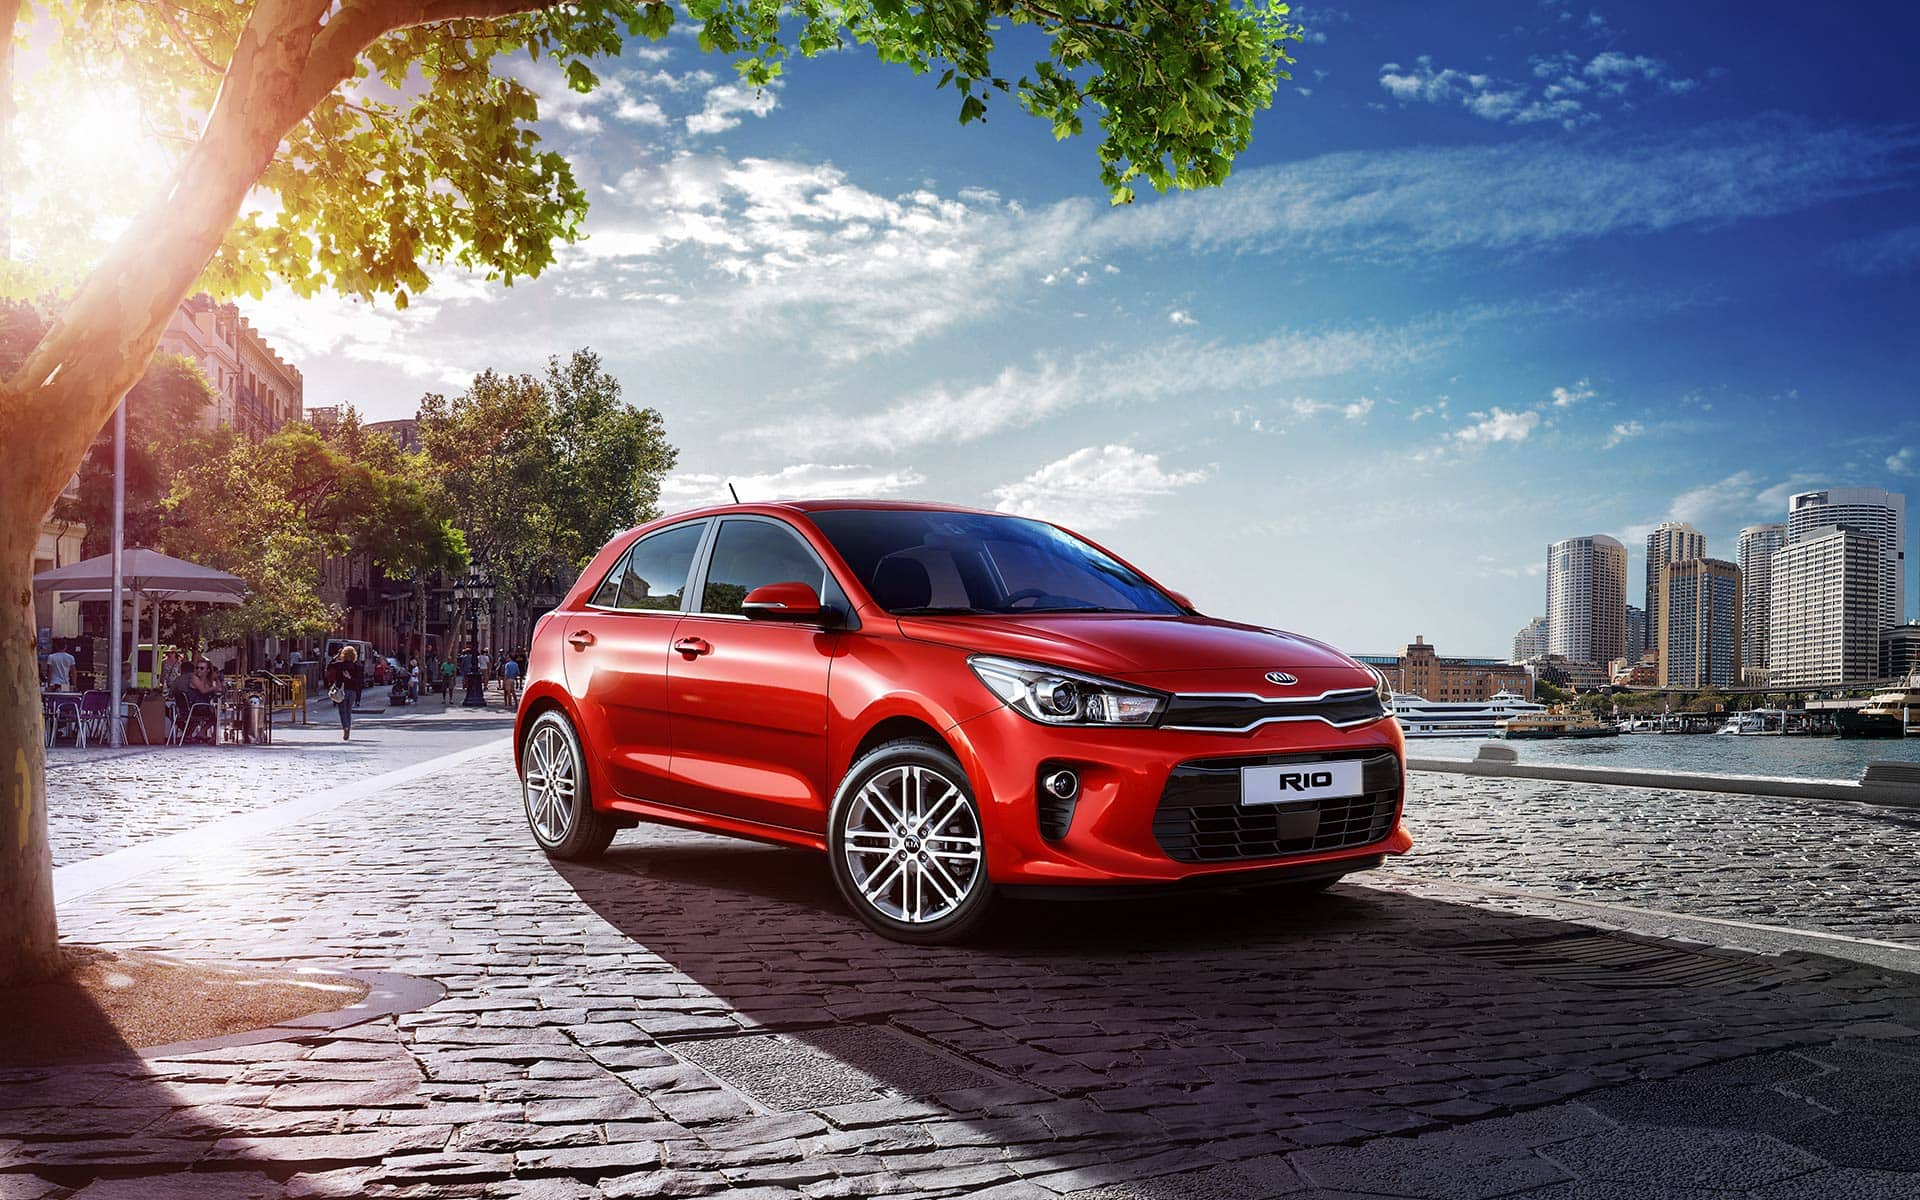 Discover the new Kia Rio | Kia Motors Ireland